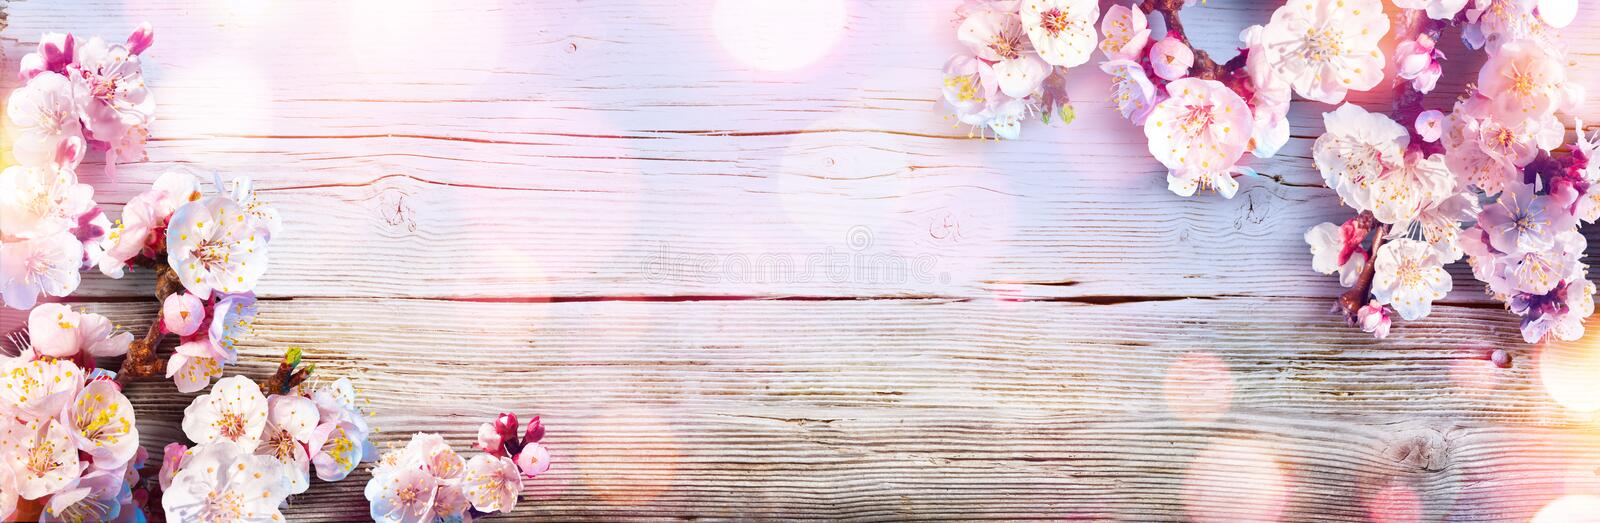 Spring Banner - Pink Blossoms royalty free stock photography